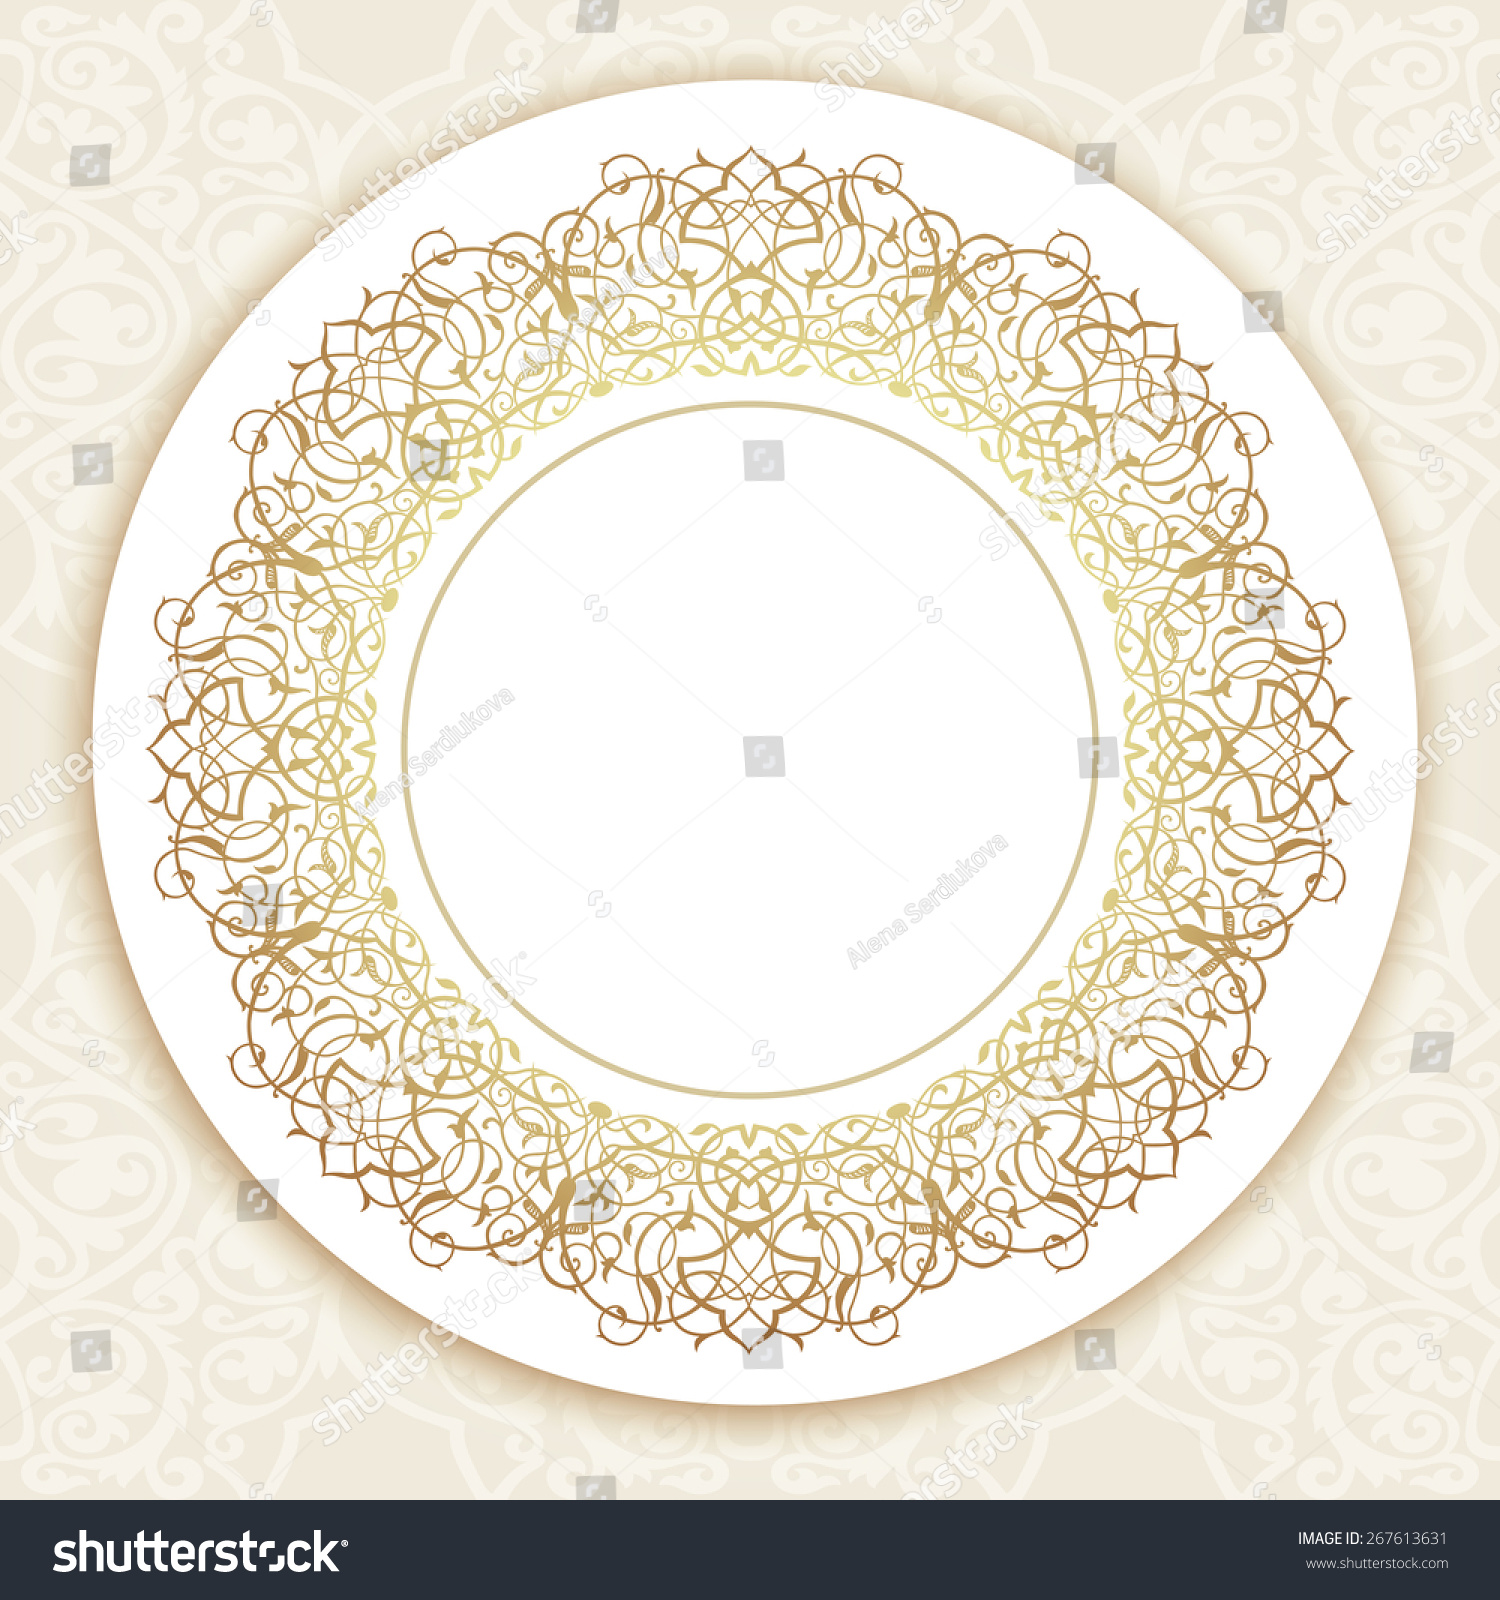 decorative ornate round frame in victorian style ornamental round